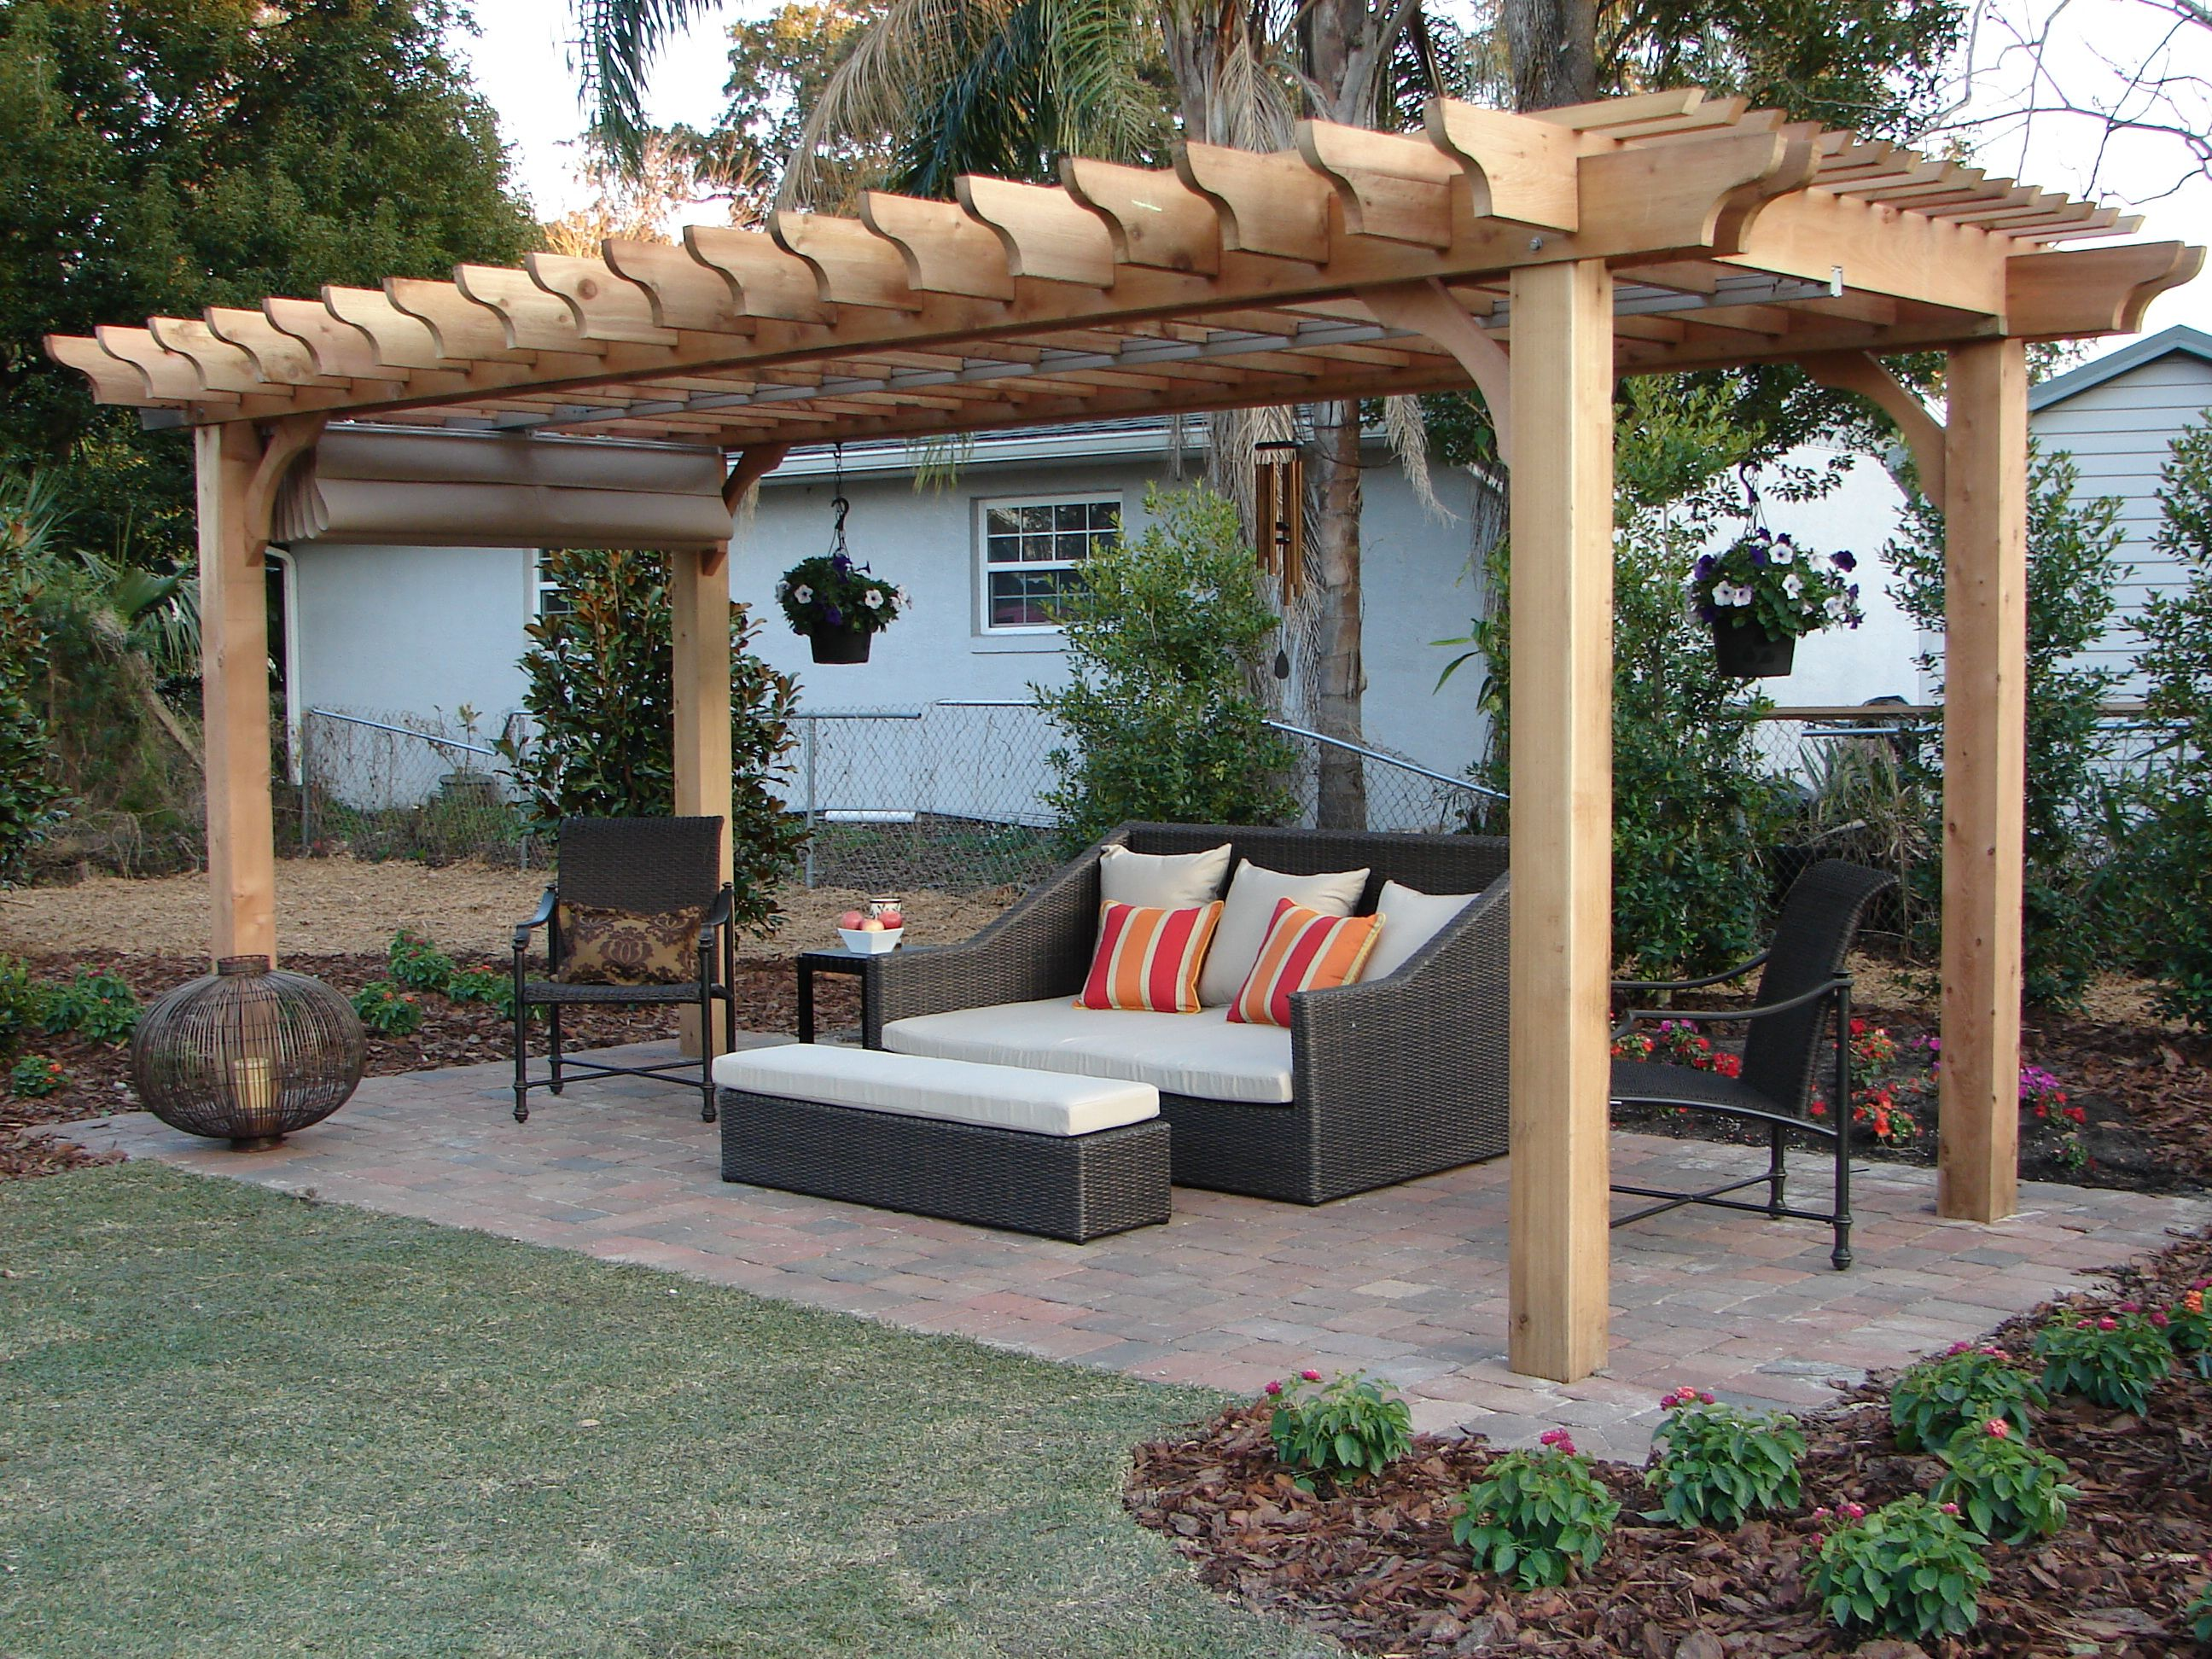 12x16 Pergola Kit Buy The Big Kahuna 12x16 Wood Pergola Kit Online At Pergola Depot Outdoor Pergola Building A Pergola Backyard Pergola